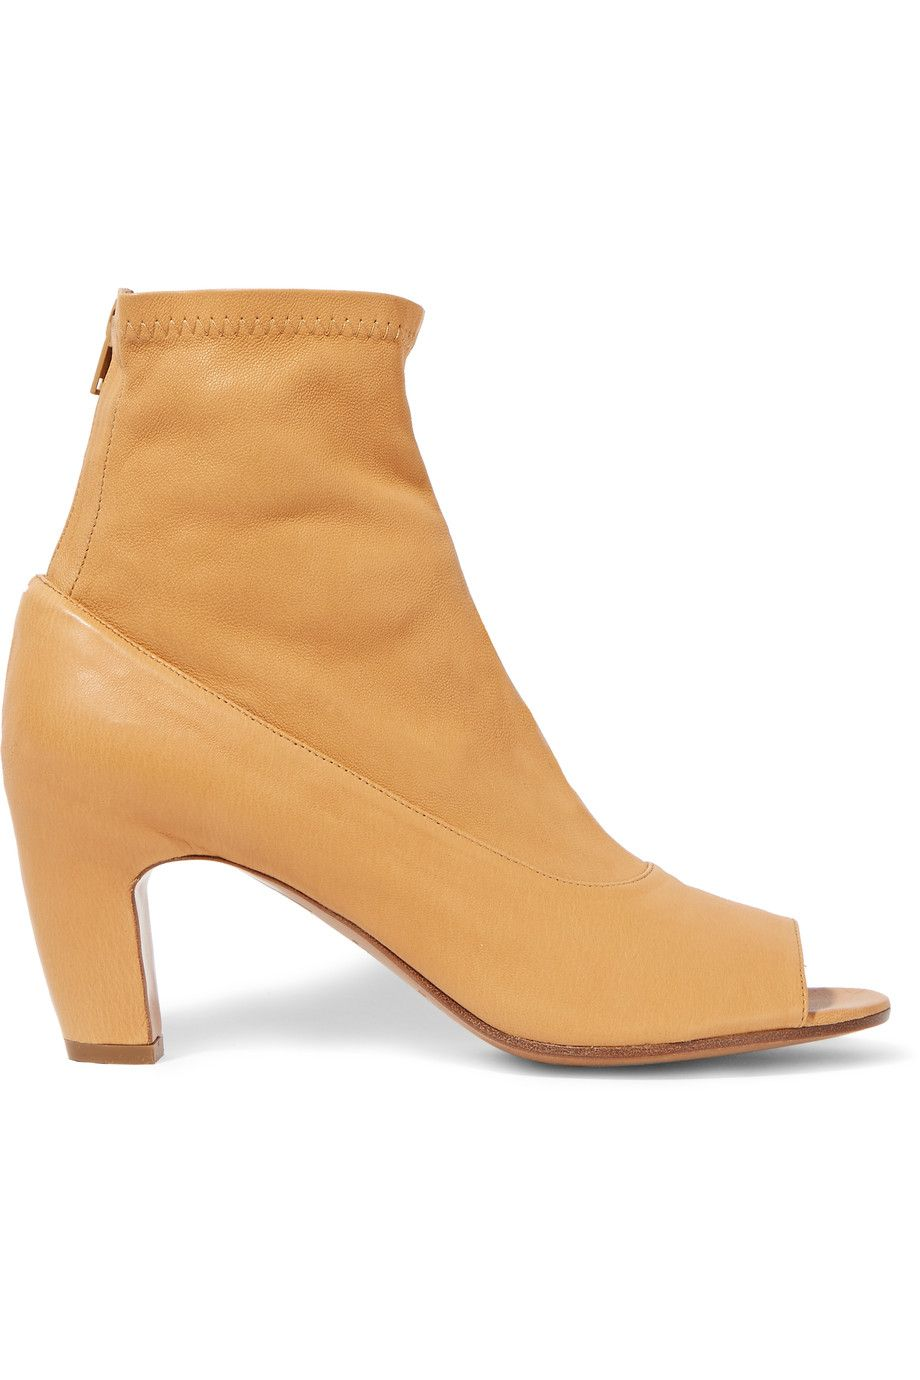 Shop on-sale Maison Margiela Leather ankle boots. Browse other ...